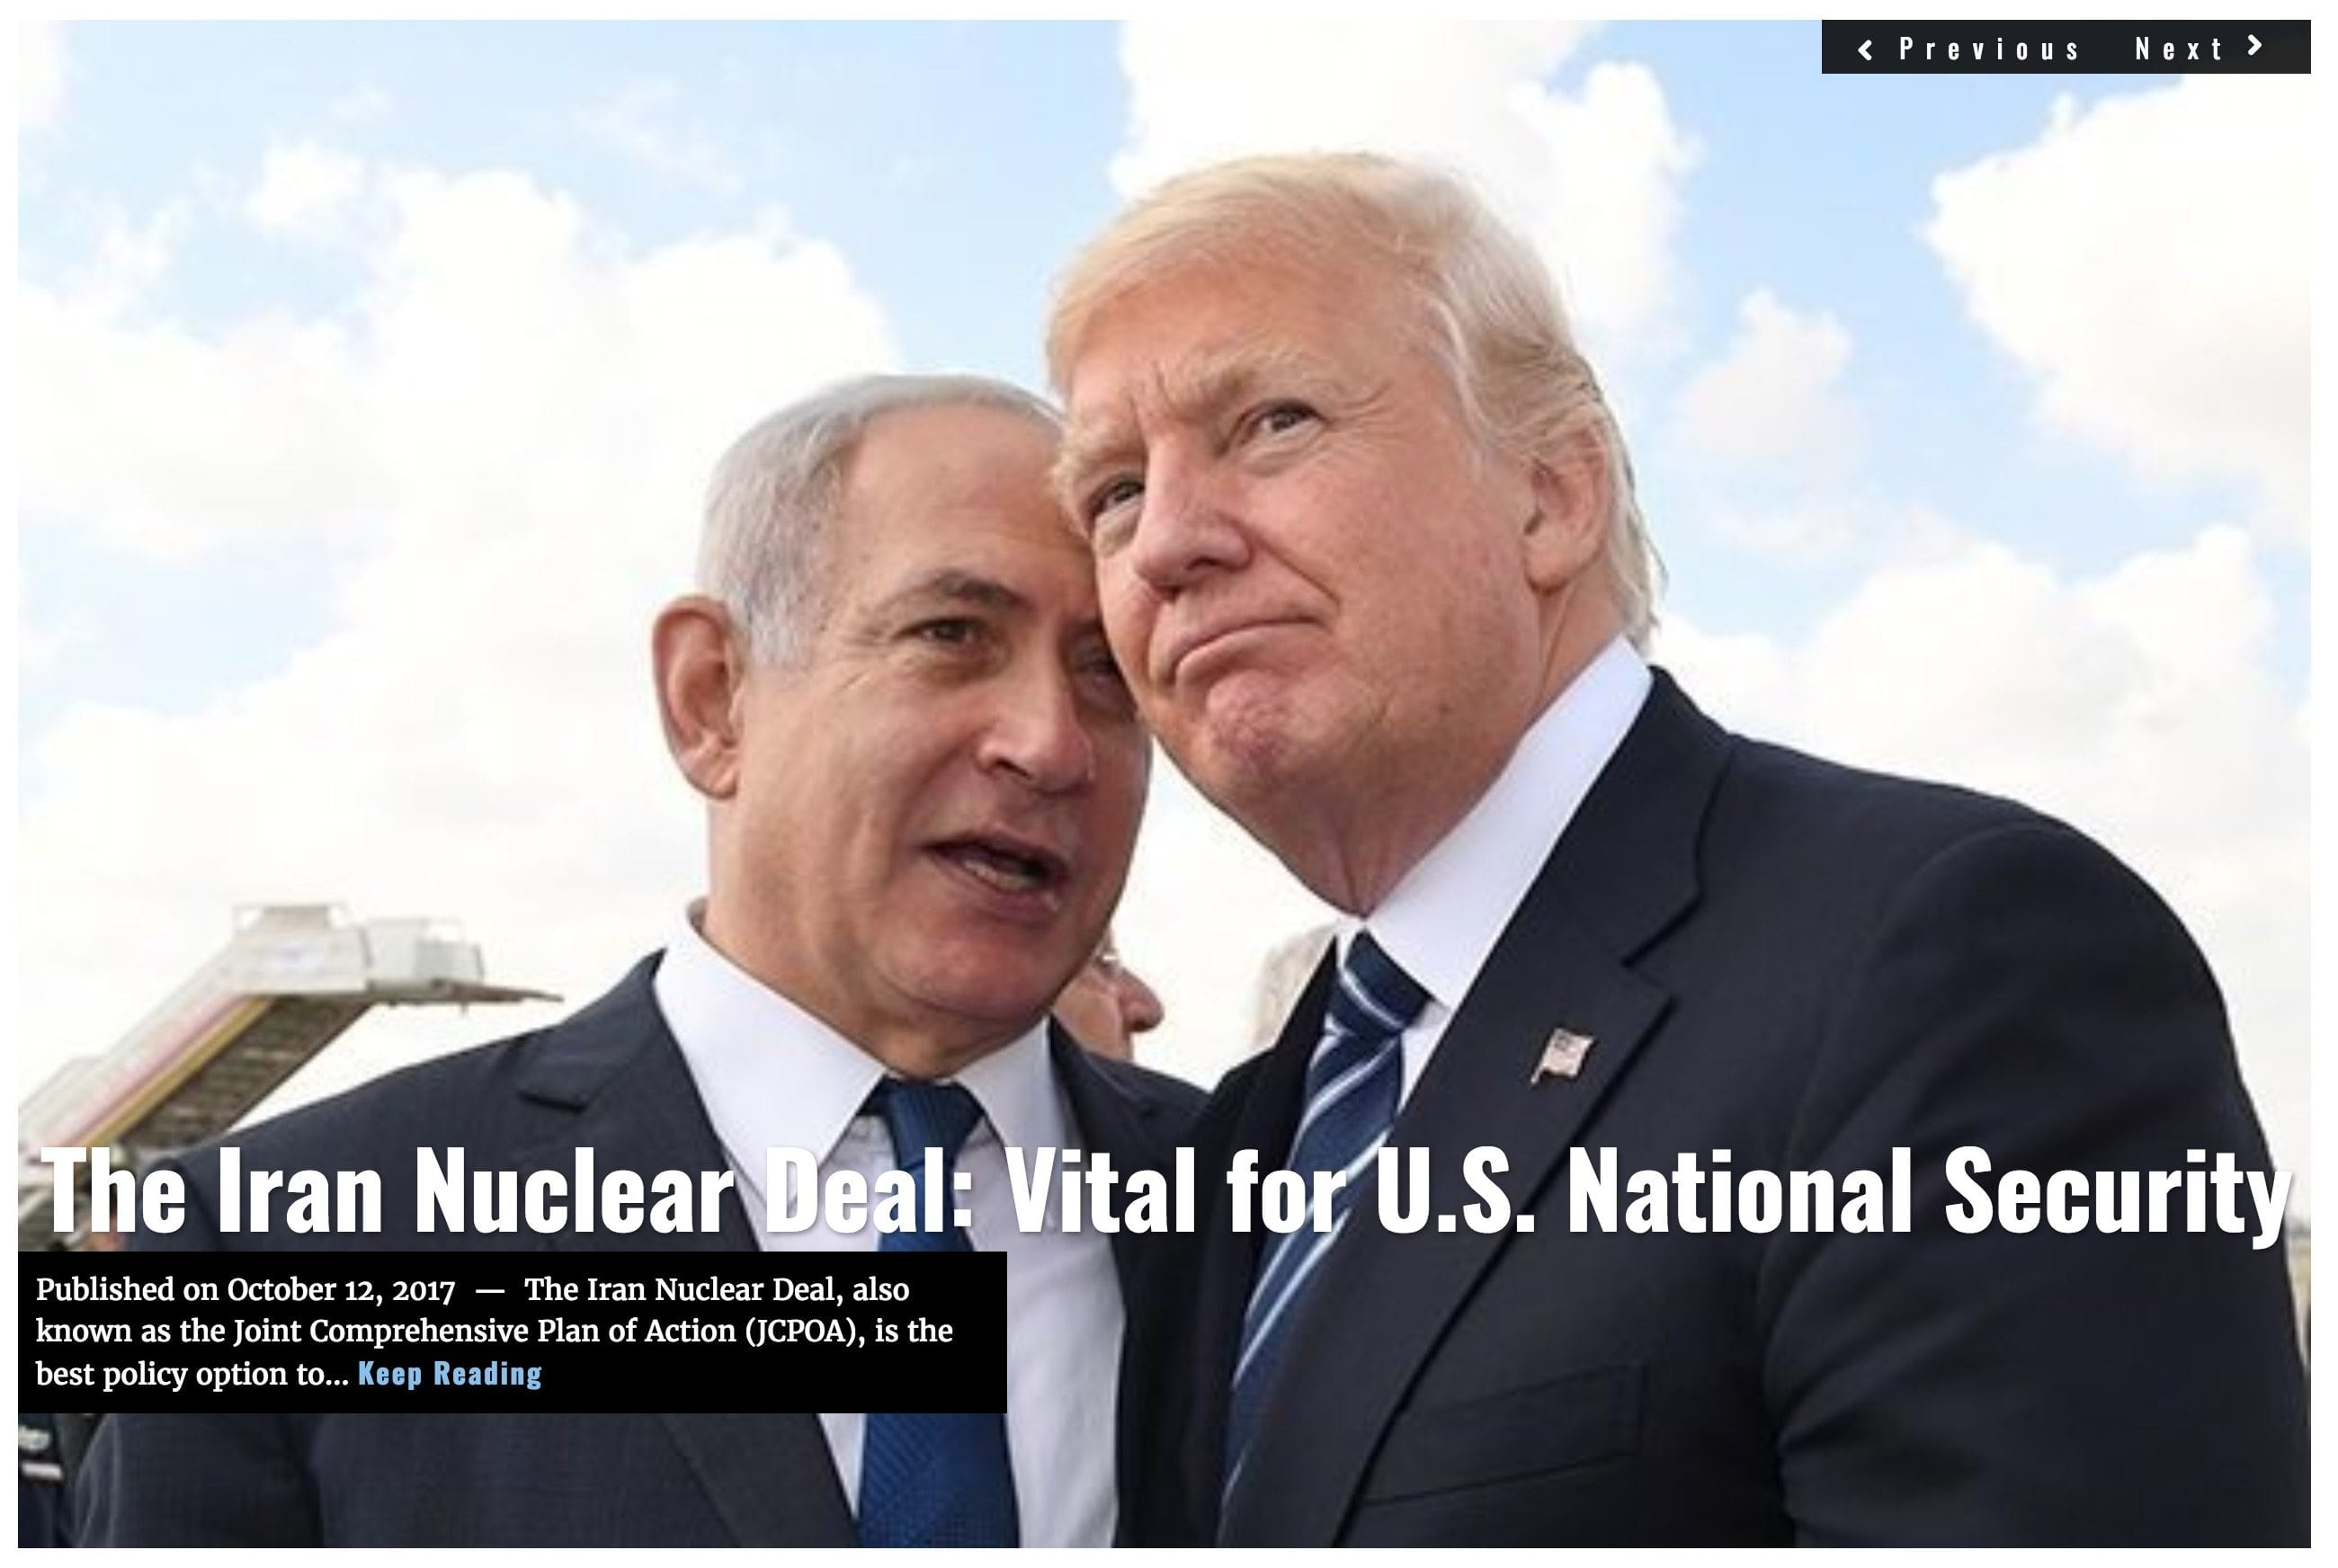 Image Lima Charlie News Headline Iran Nuclear Castelberry OCT12